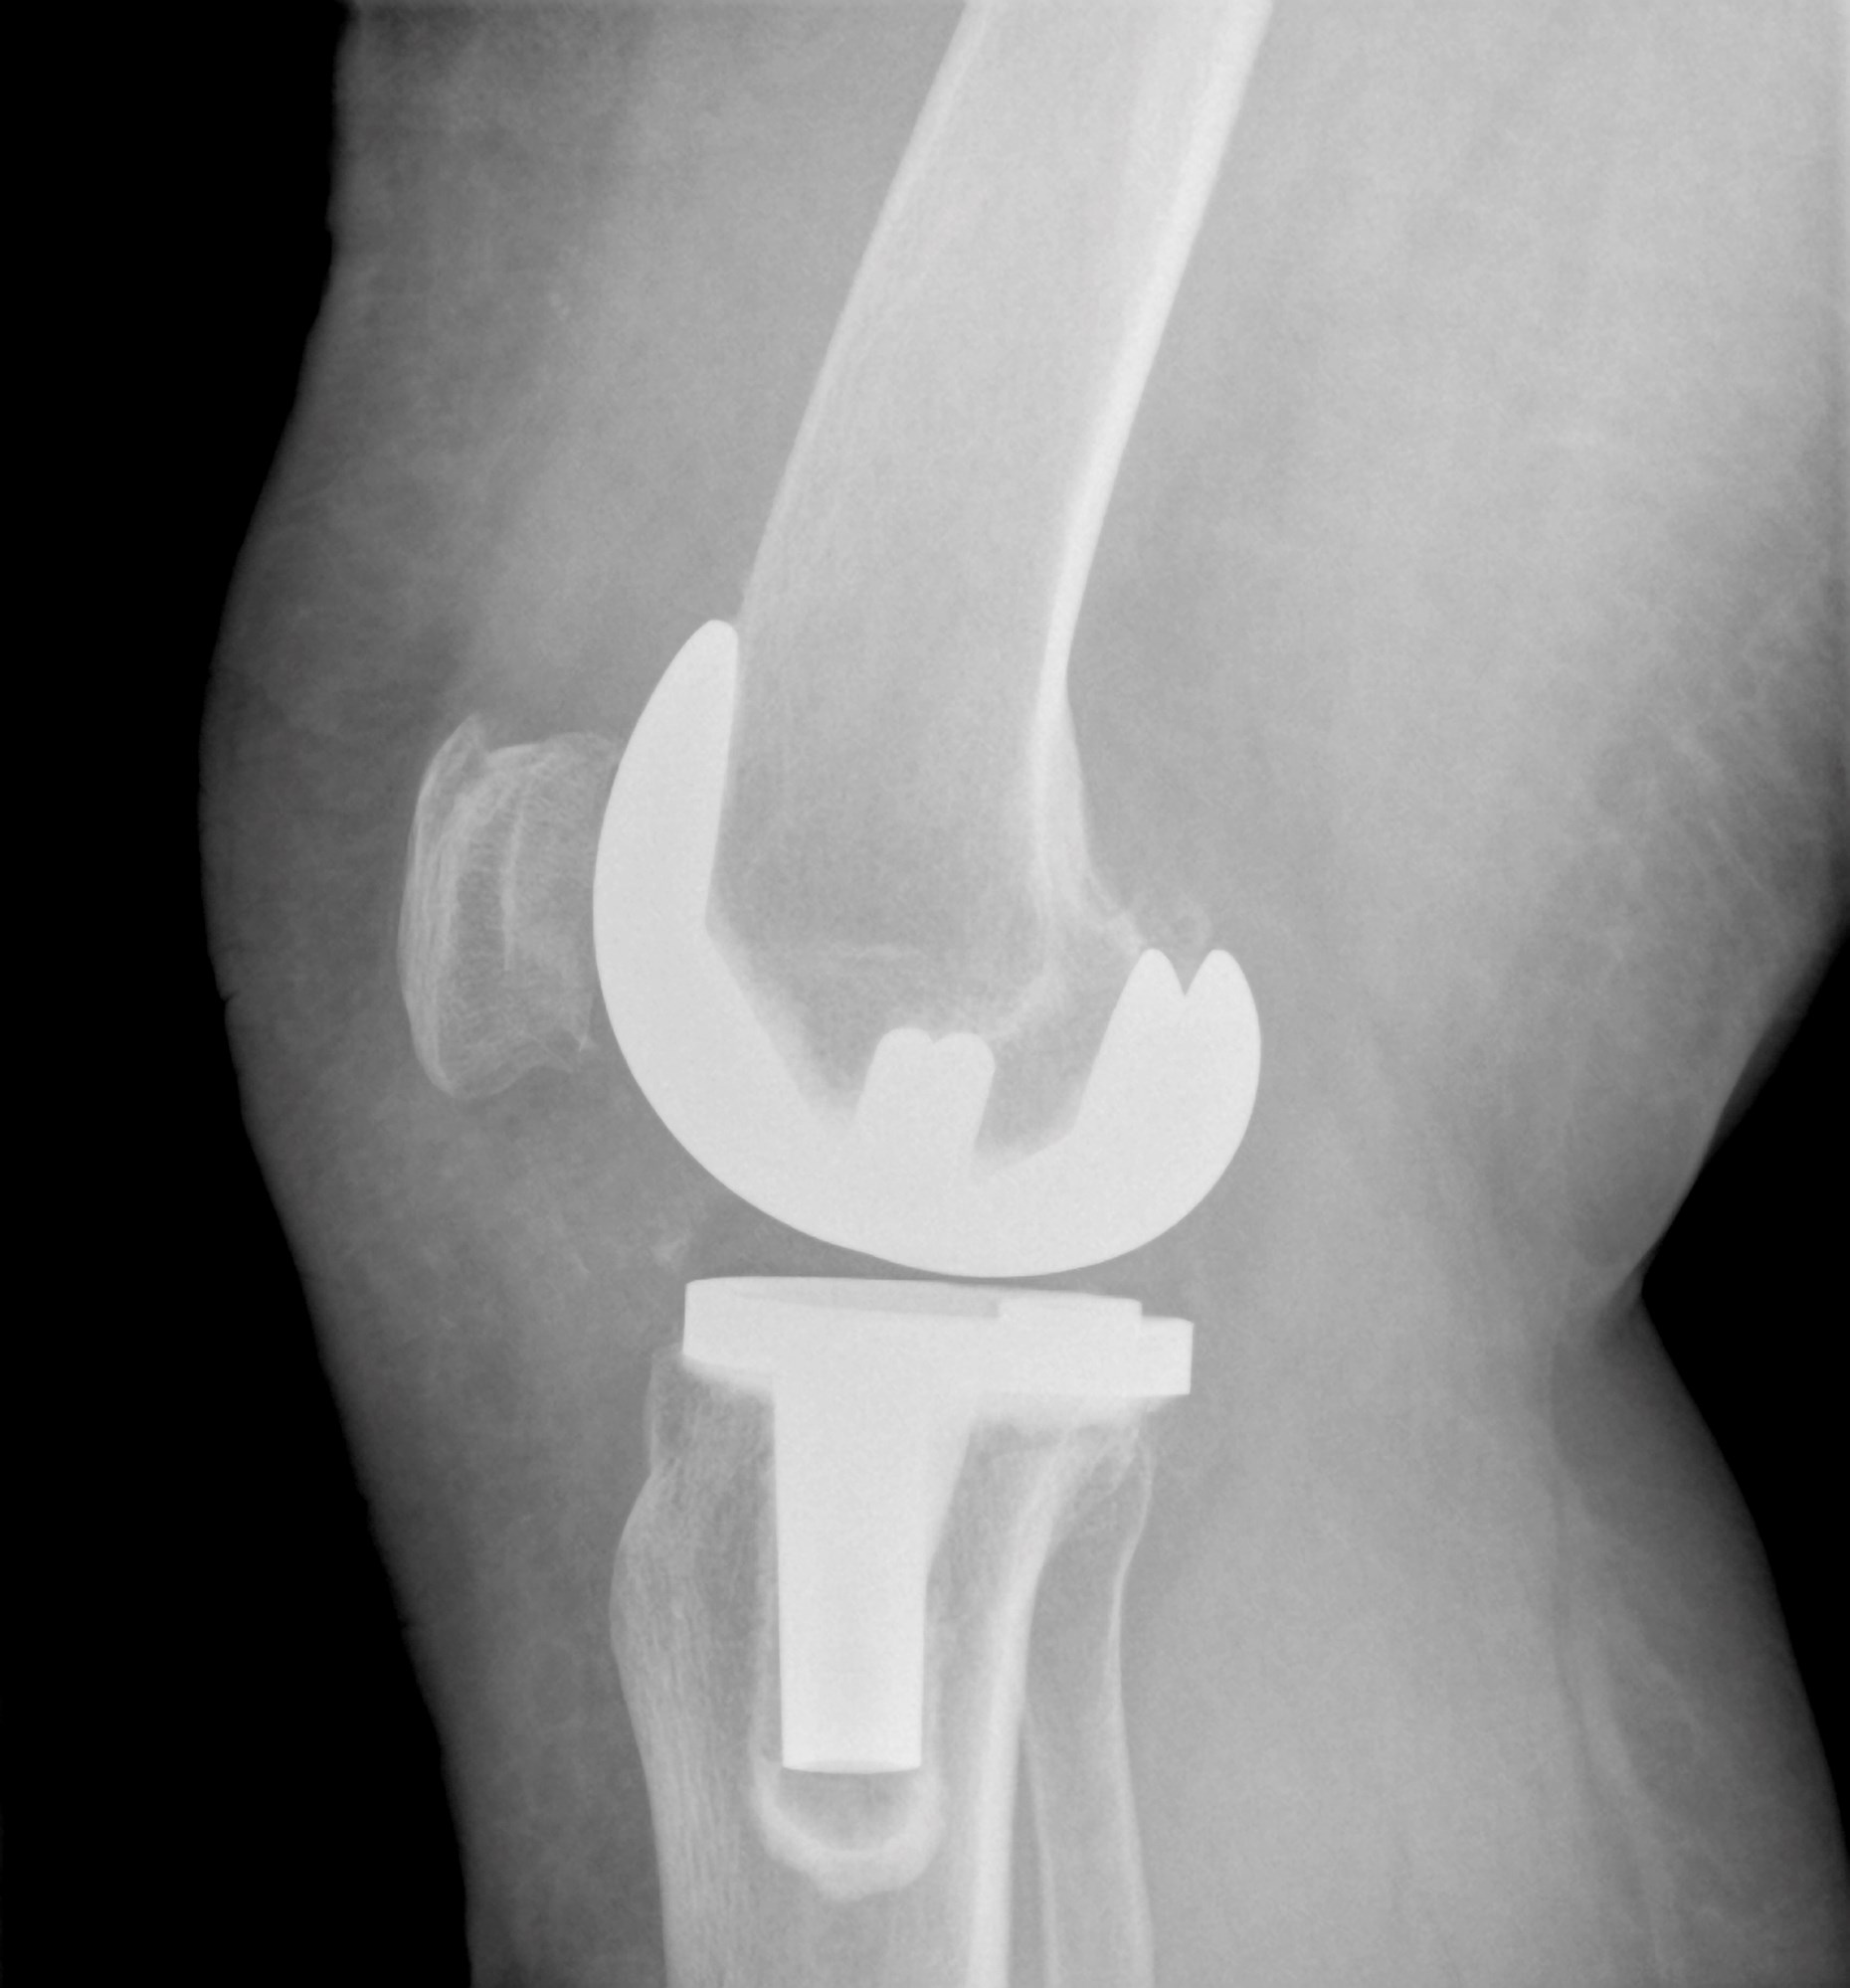 Joint Replacement Surgery Outcomes Improved With SSRIs